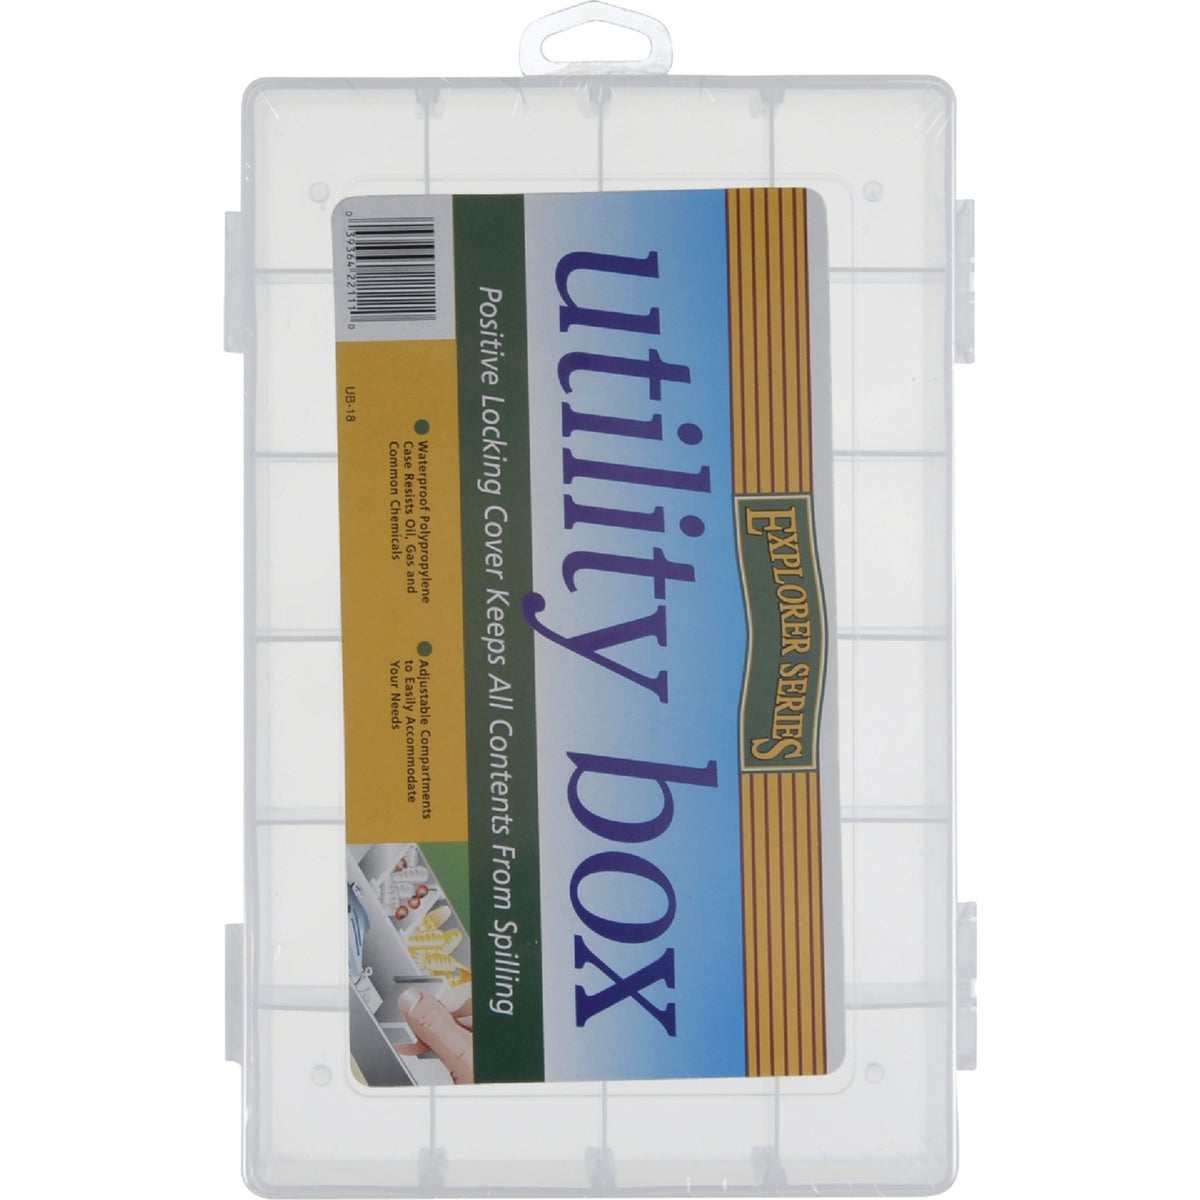 24 SECTION UTILITY BOX